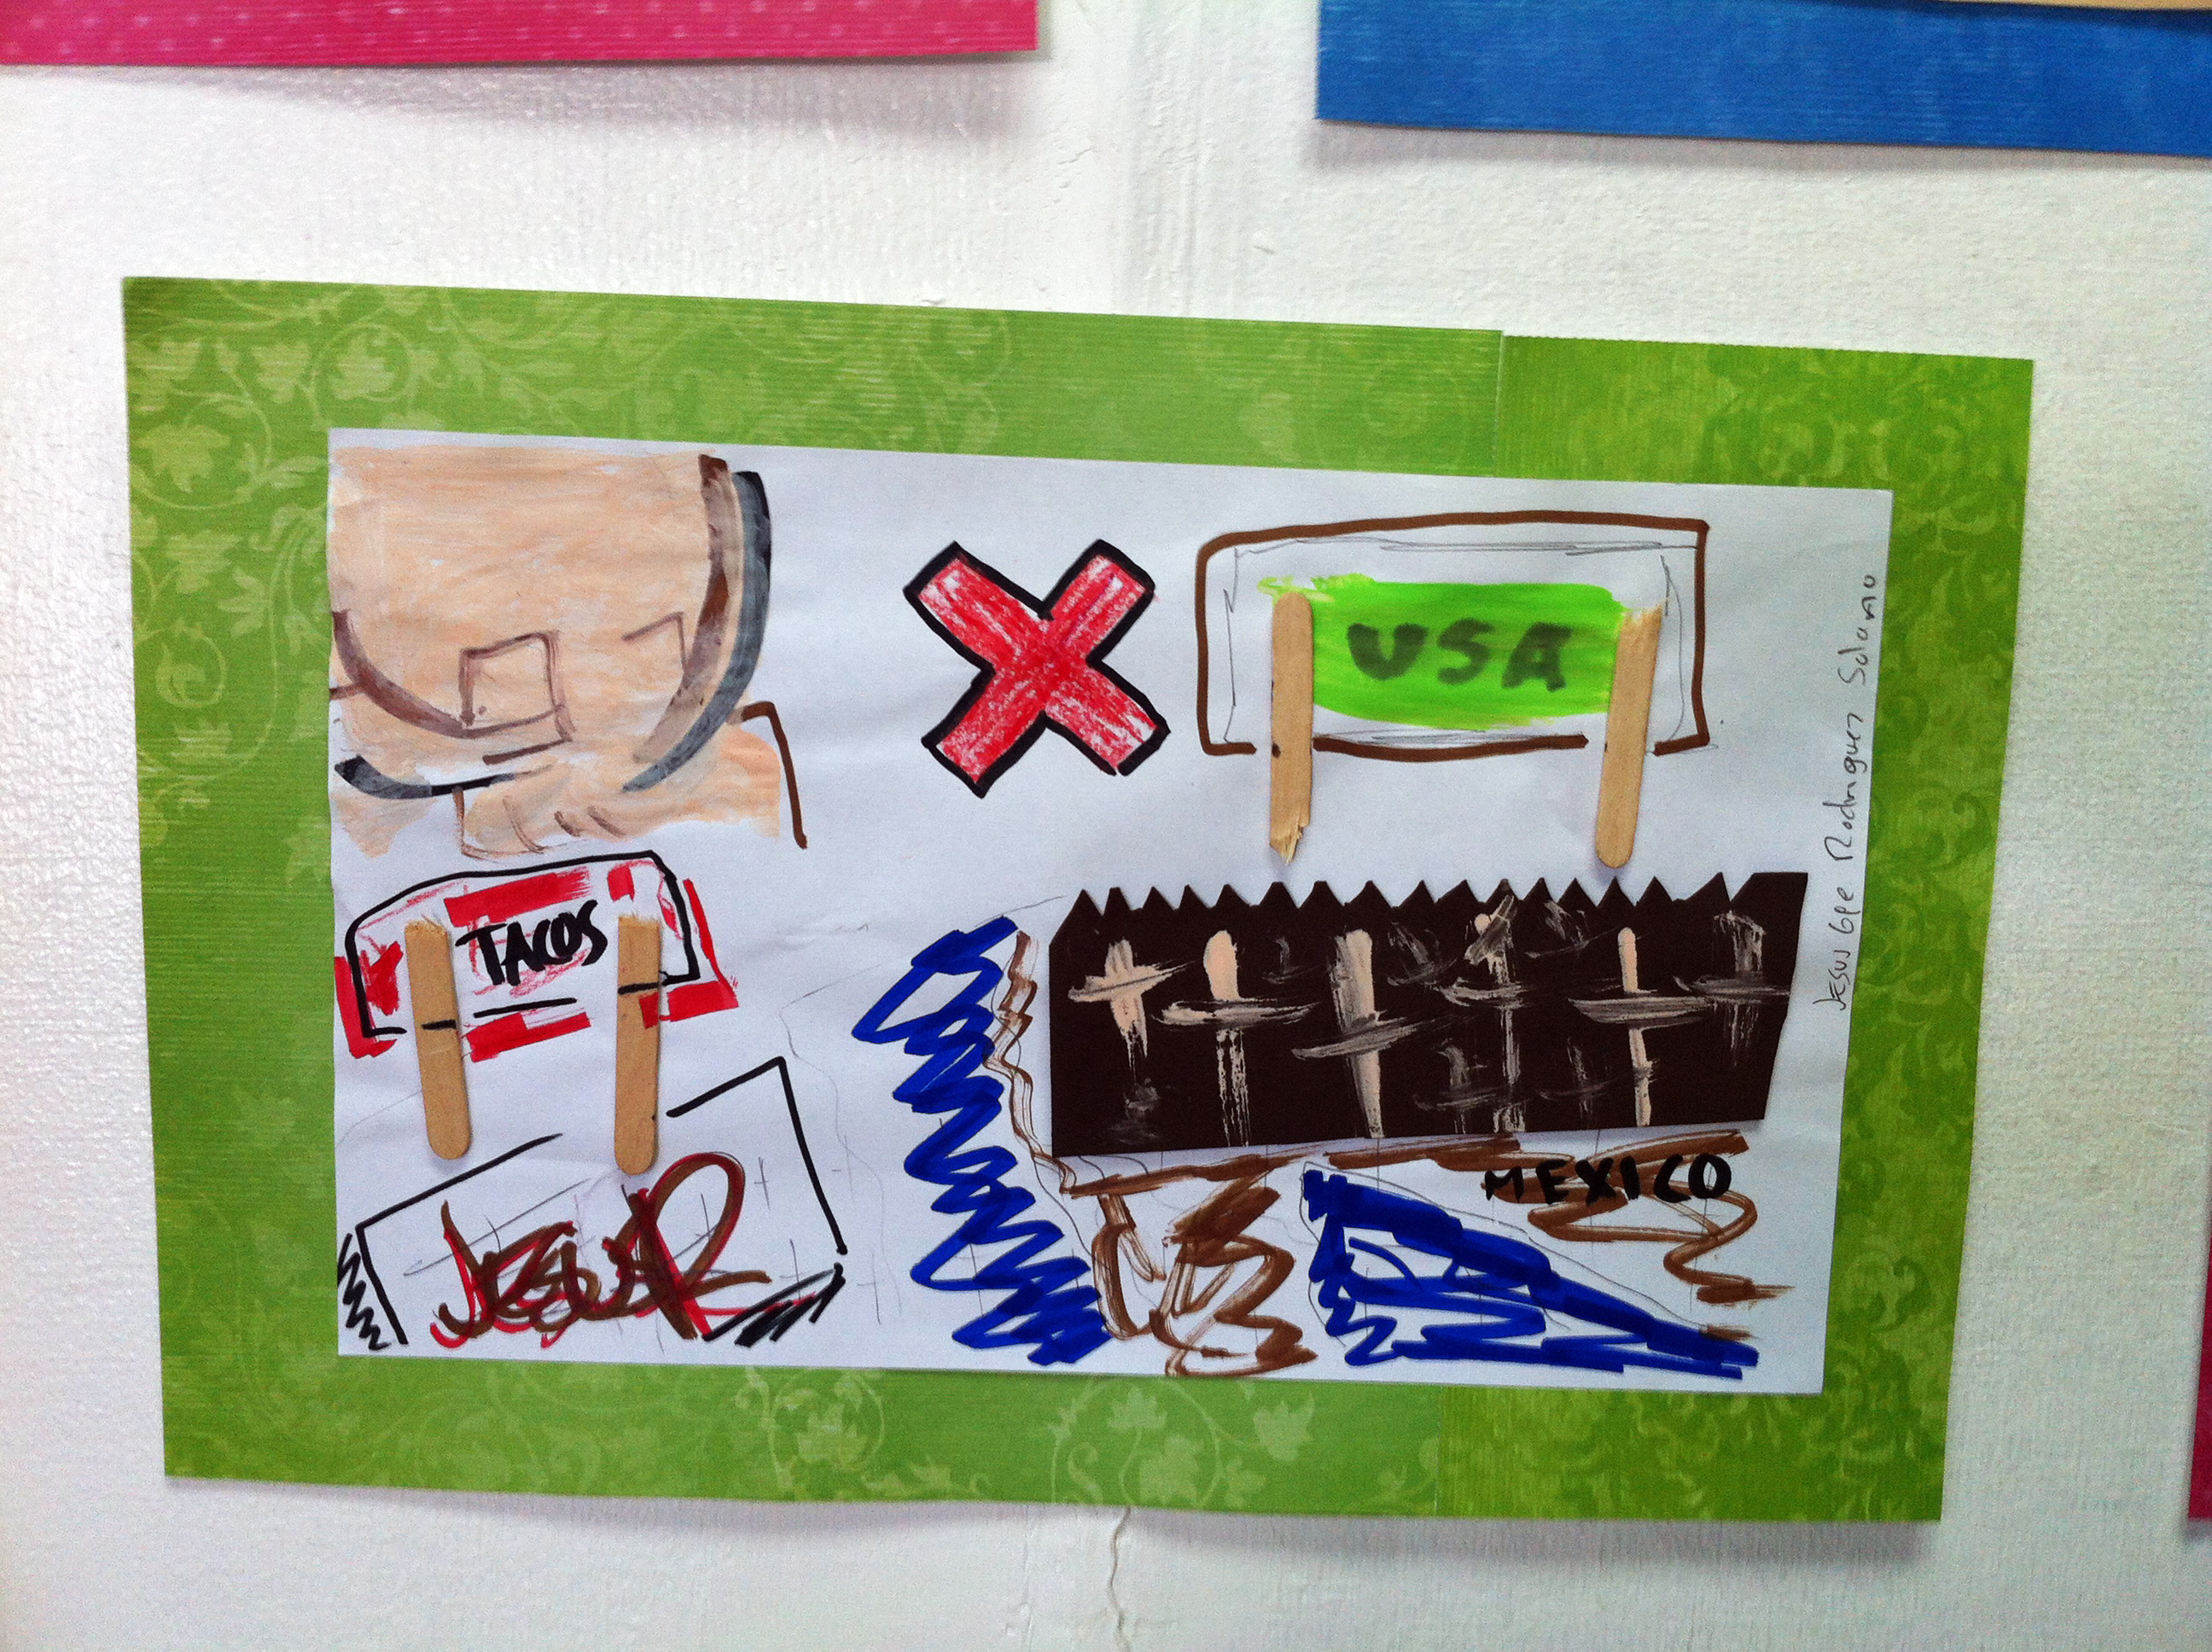 Caption: A drawing by the American child of deported parents in Tijuana., Credit: Beth Caldwell